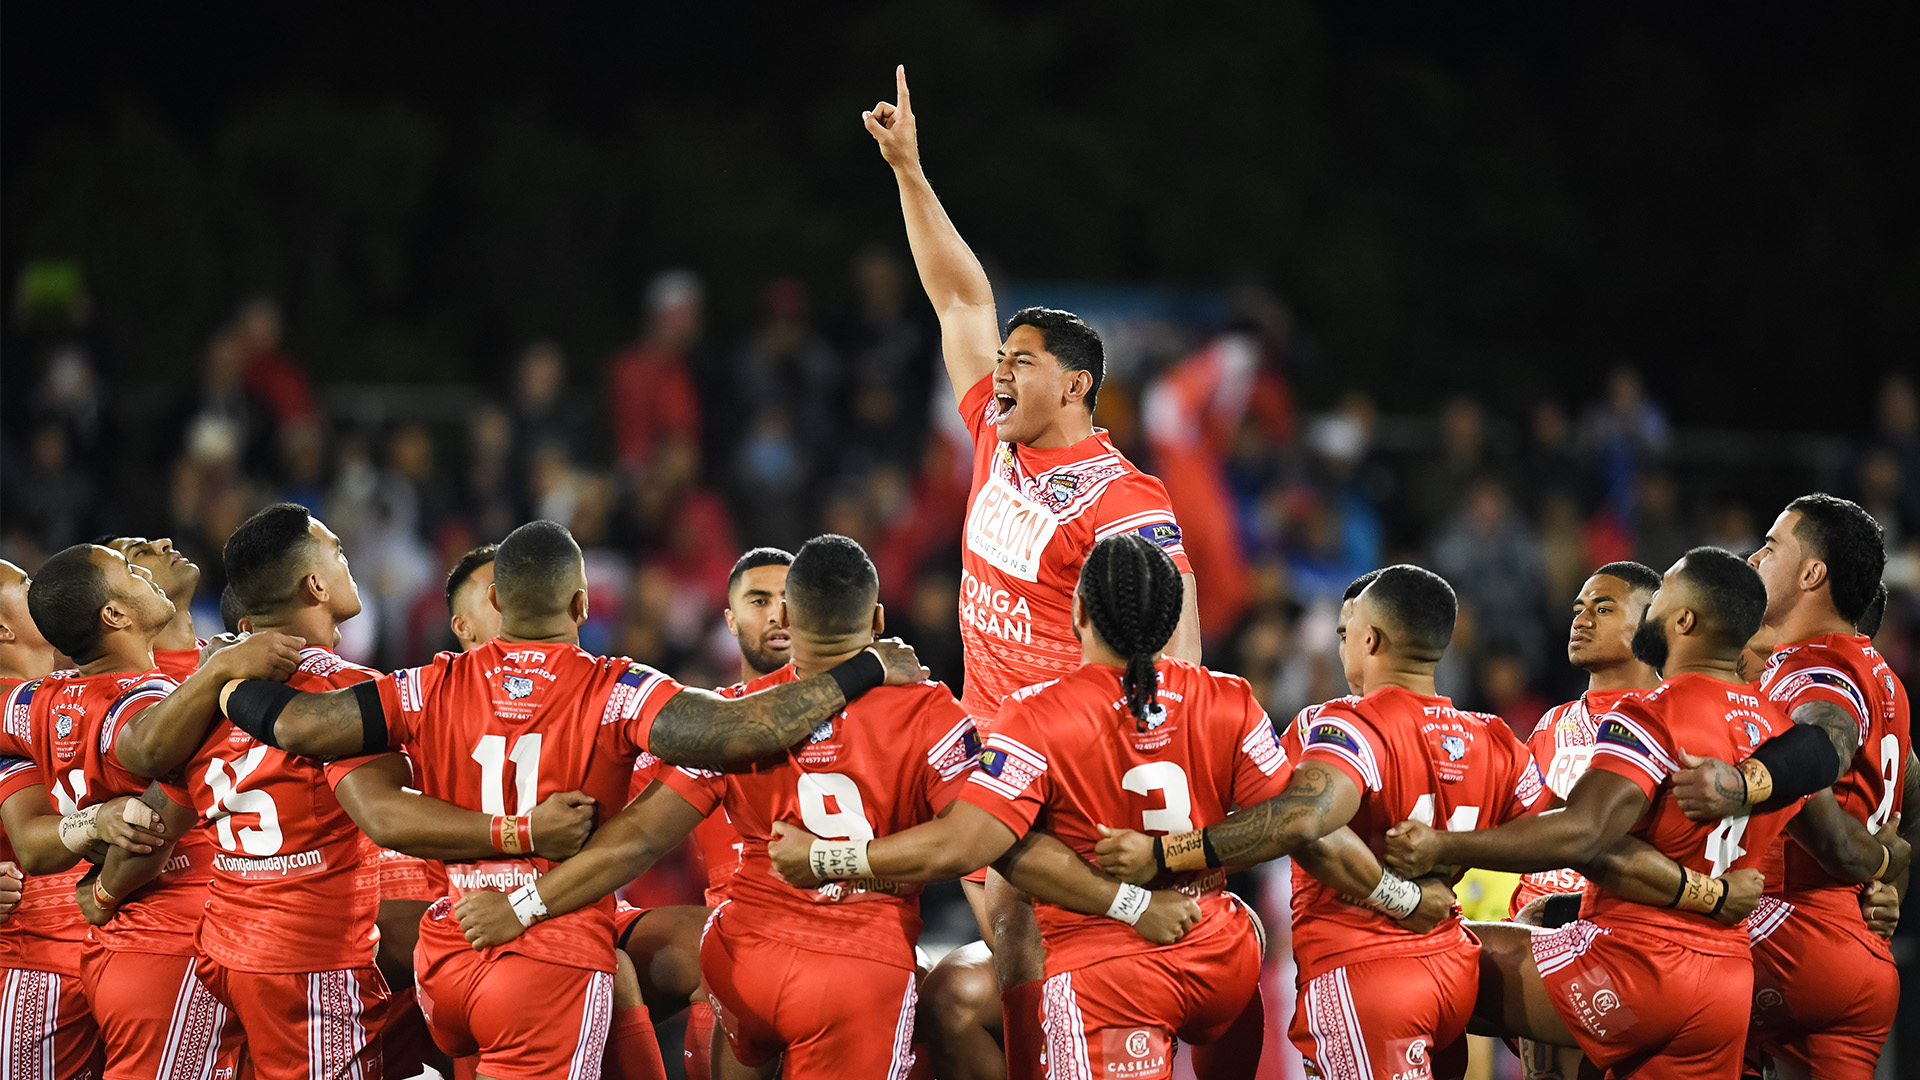 Tonga solidify fourth position in latest World Rankings